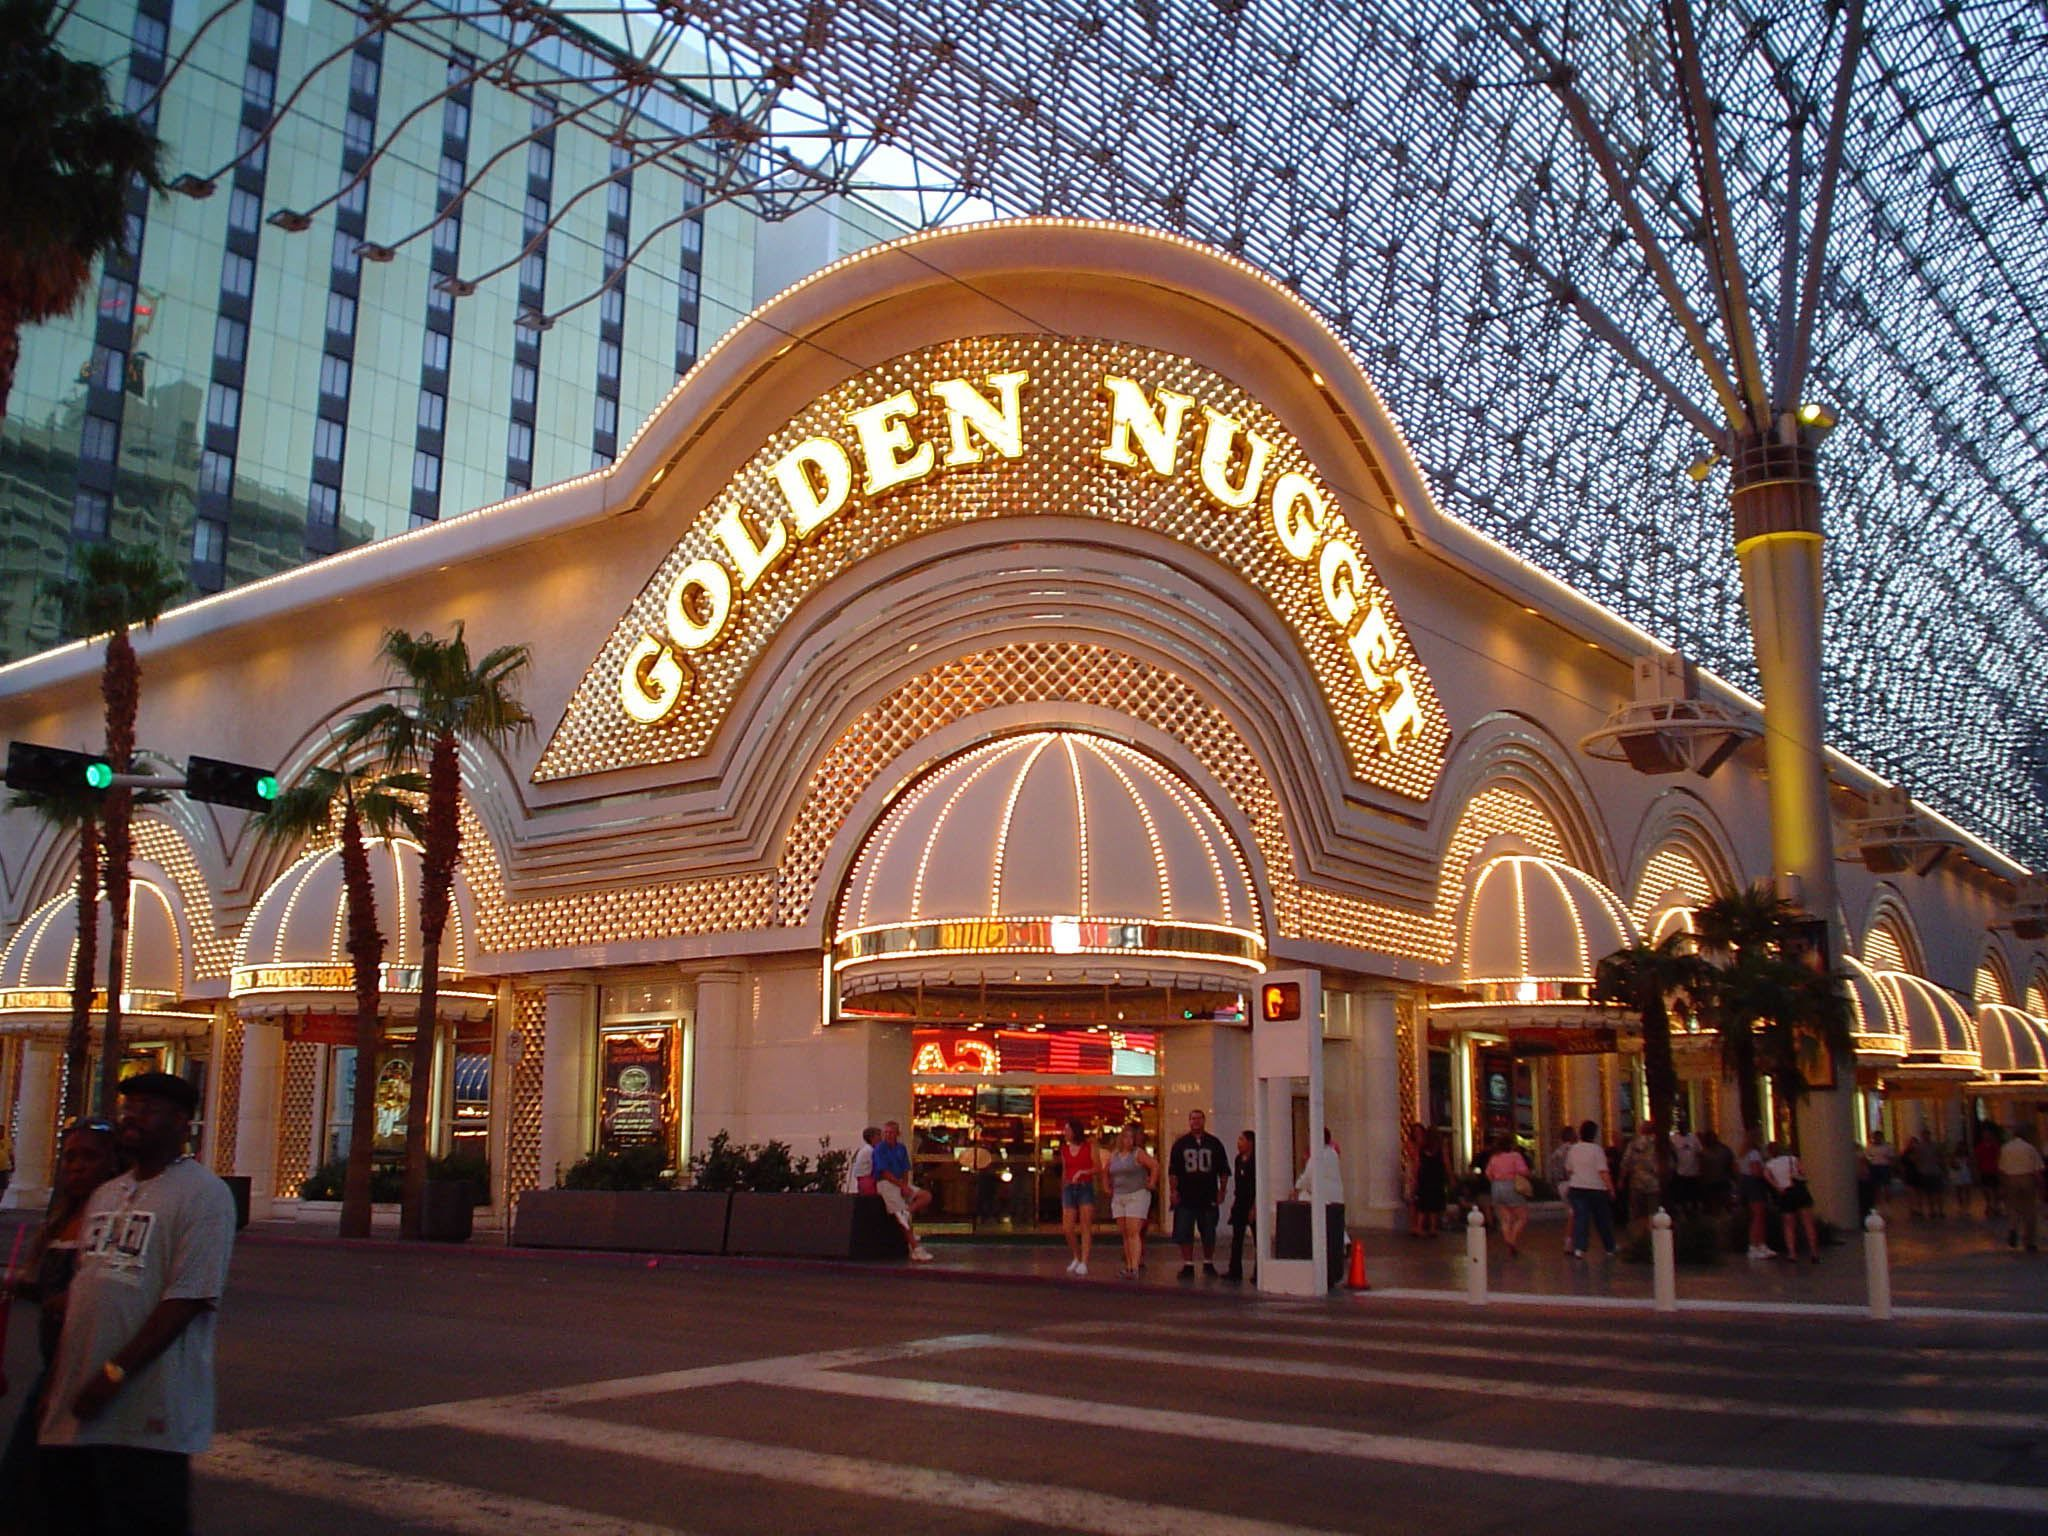 Golden nugget casino las vegas nv atlantic casino city harrahs hotel review